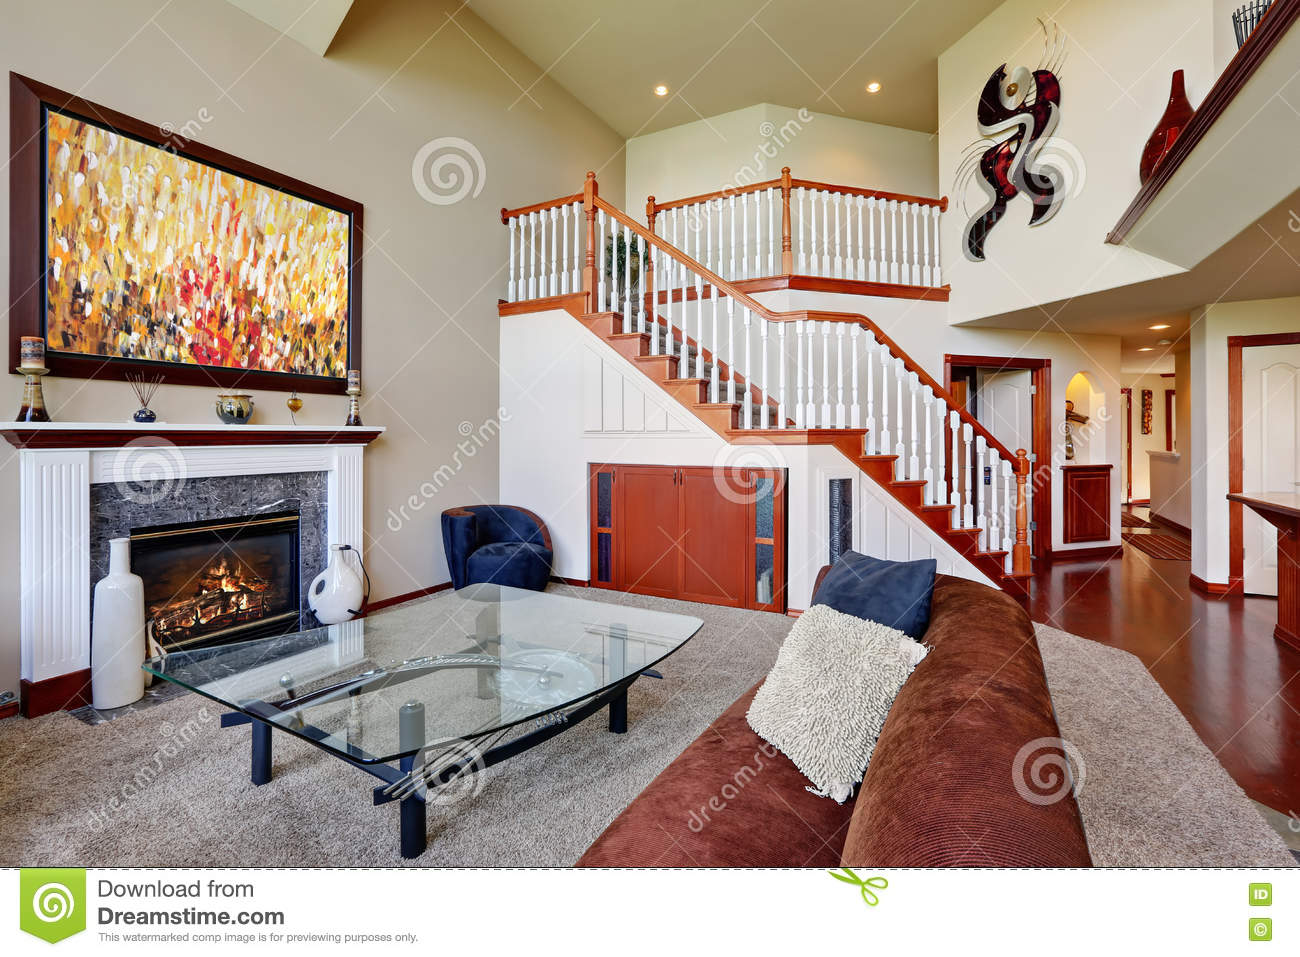 american living room with high vaulted ceiling and staircase stock image image of building. Black Bedroom Furniture Sets. Home Design Ideas